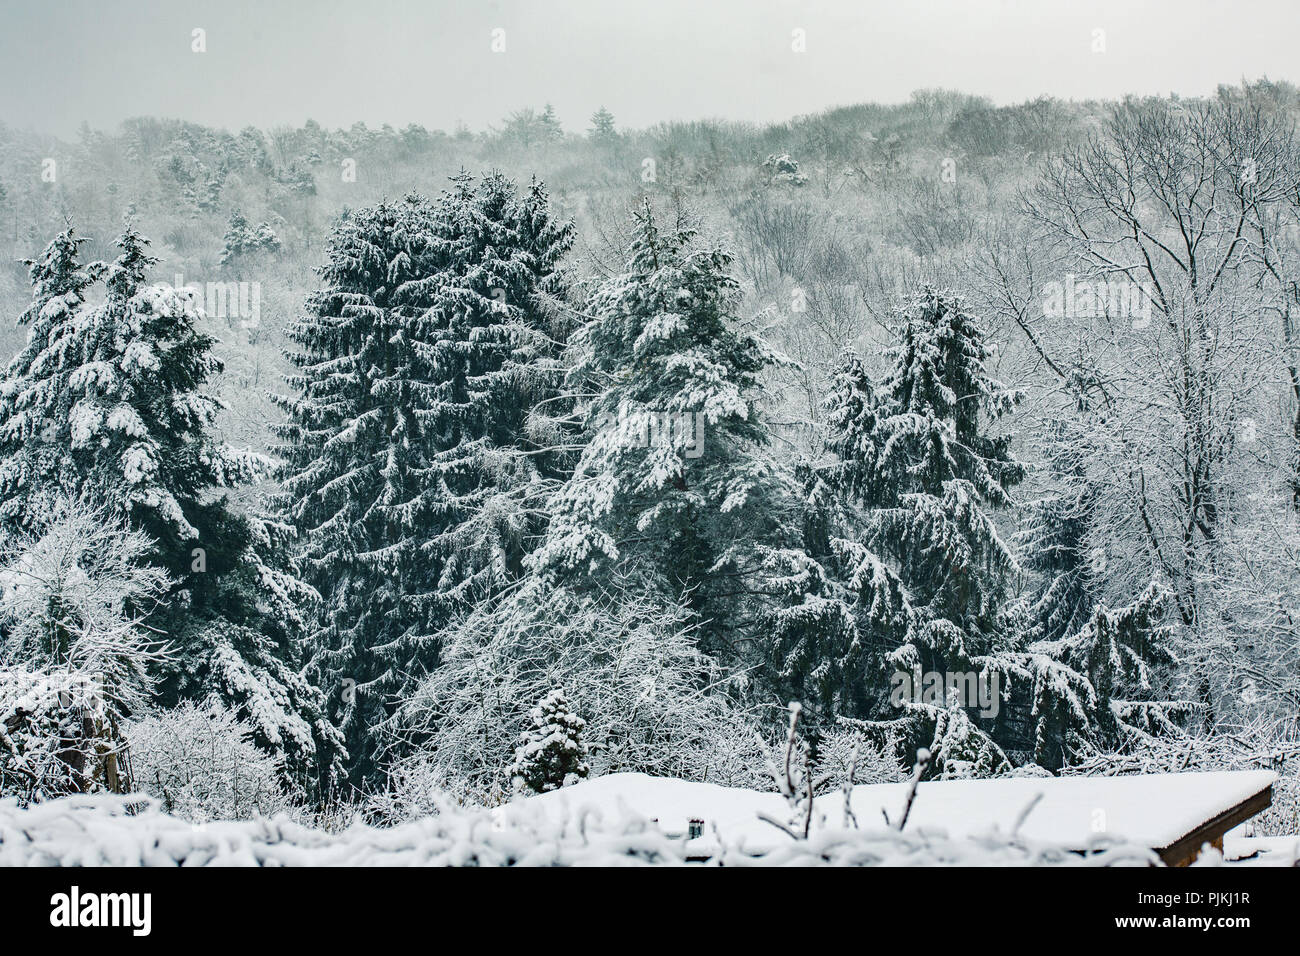 Fir trees with snow and snowy trees in the background - Stock Image